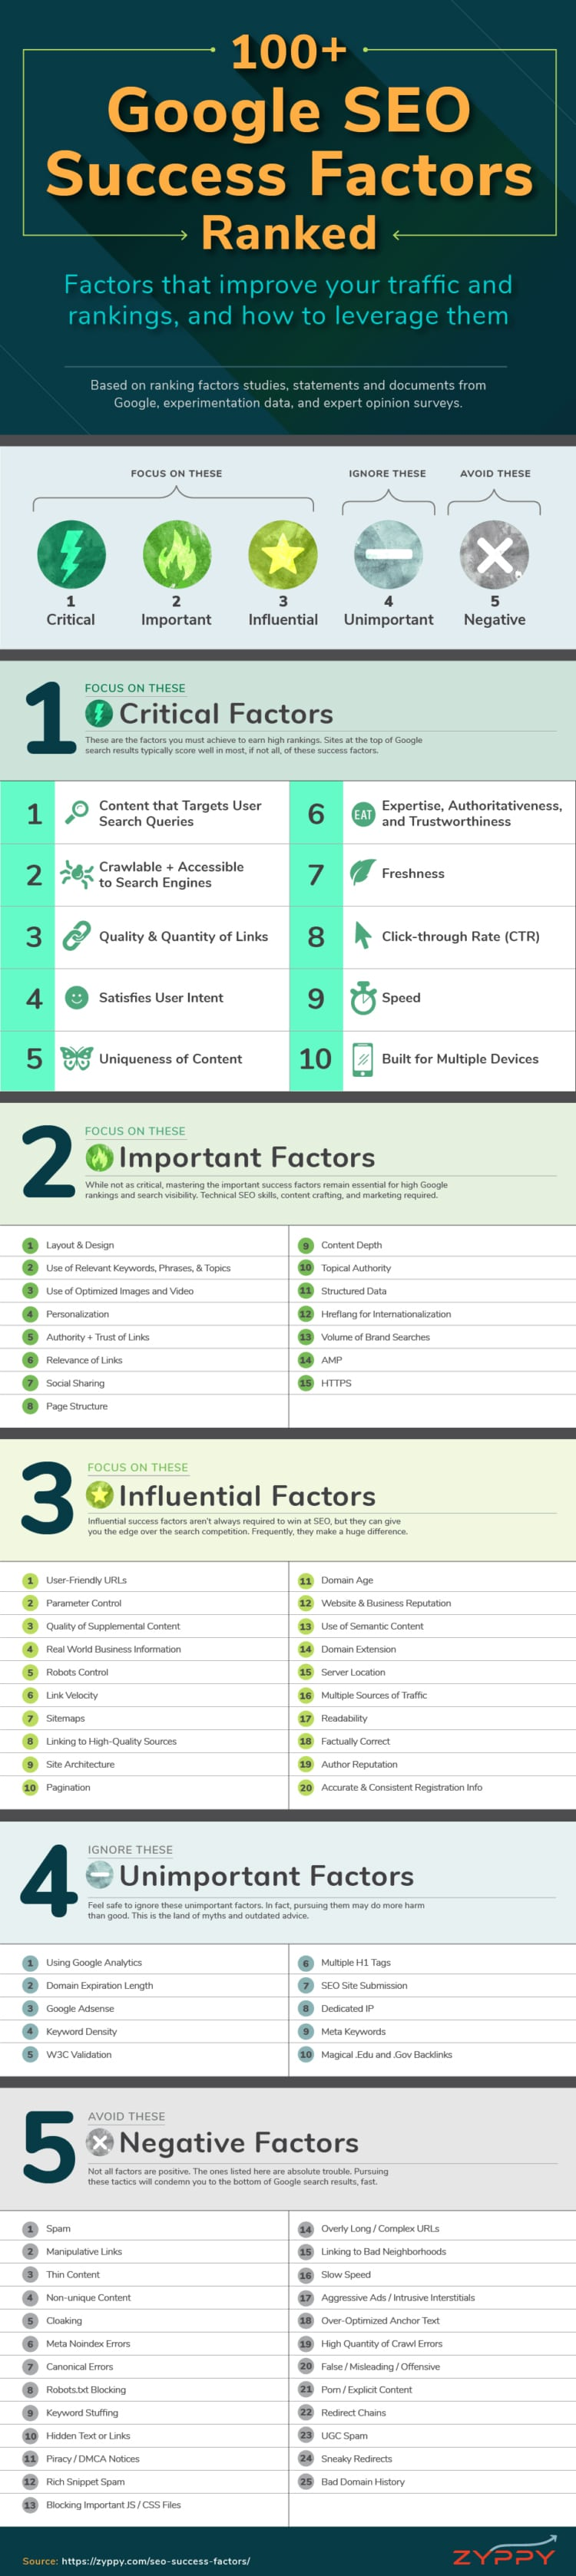 SEO Factors That Affect Your Position